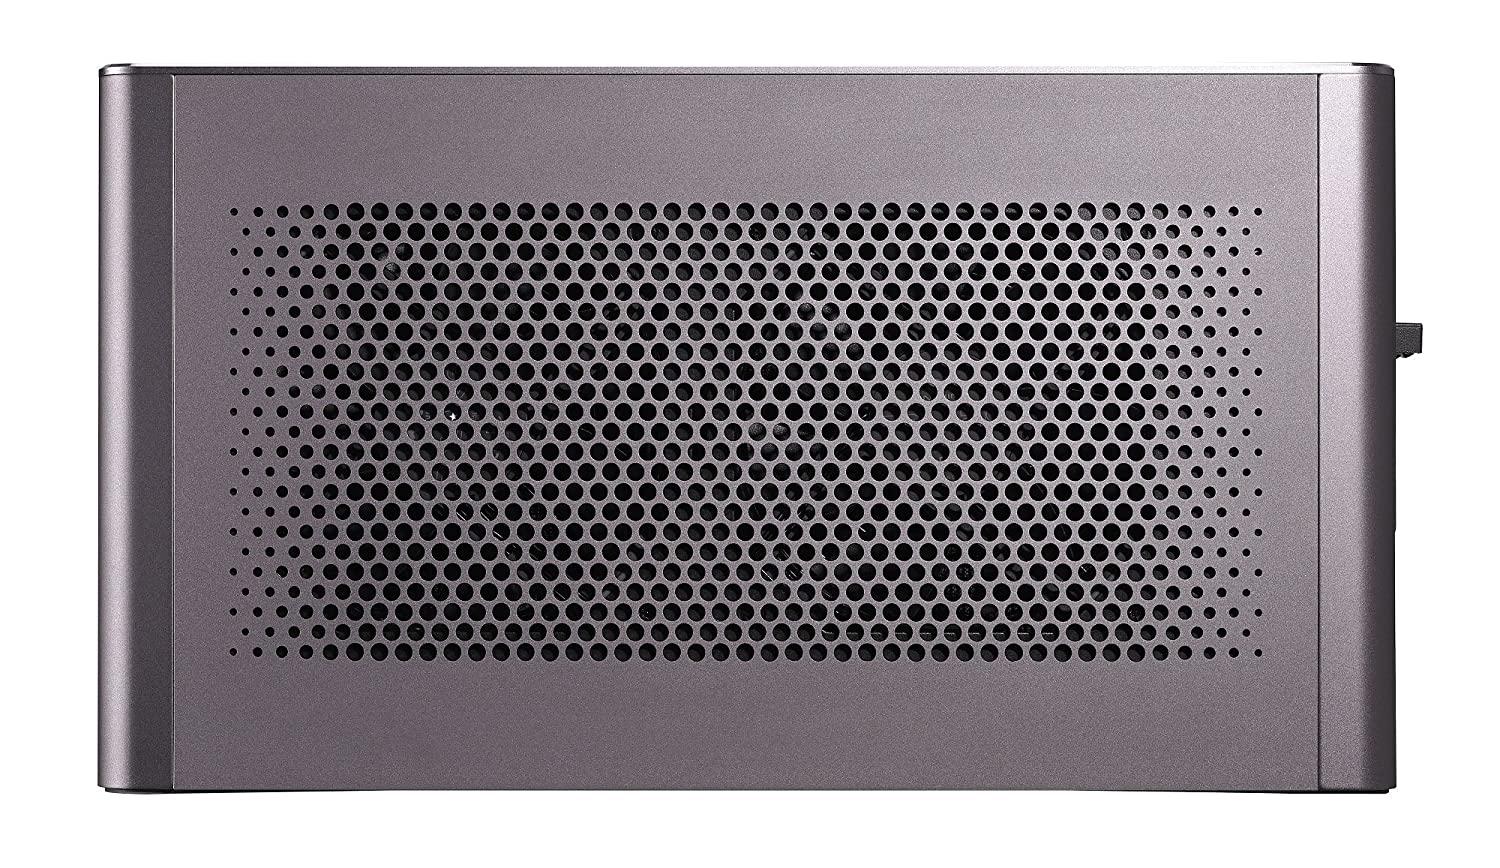 ASUS XG-Station-PRO Thunderbolt 3 USB 3.1 External Graphics Card Dock Space Grey